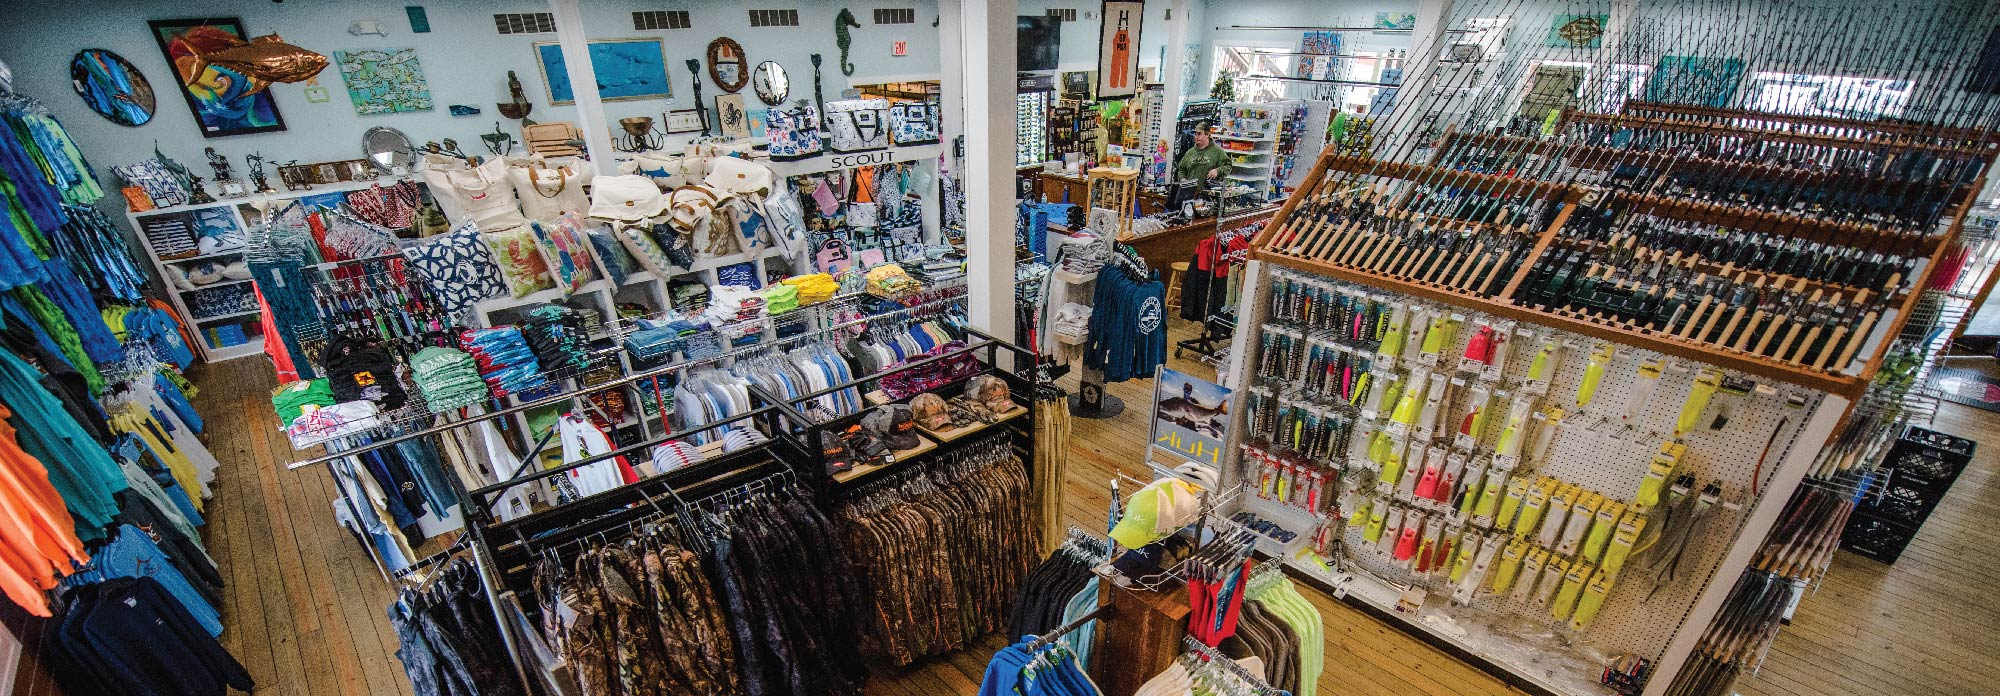 Inside view of Atlantic Tackle's store in West Ocean City, MD